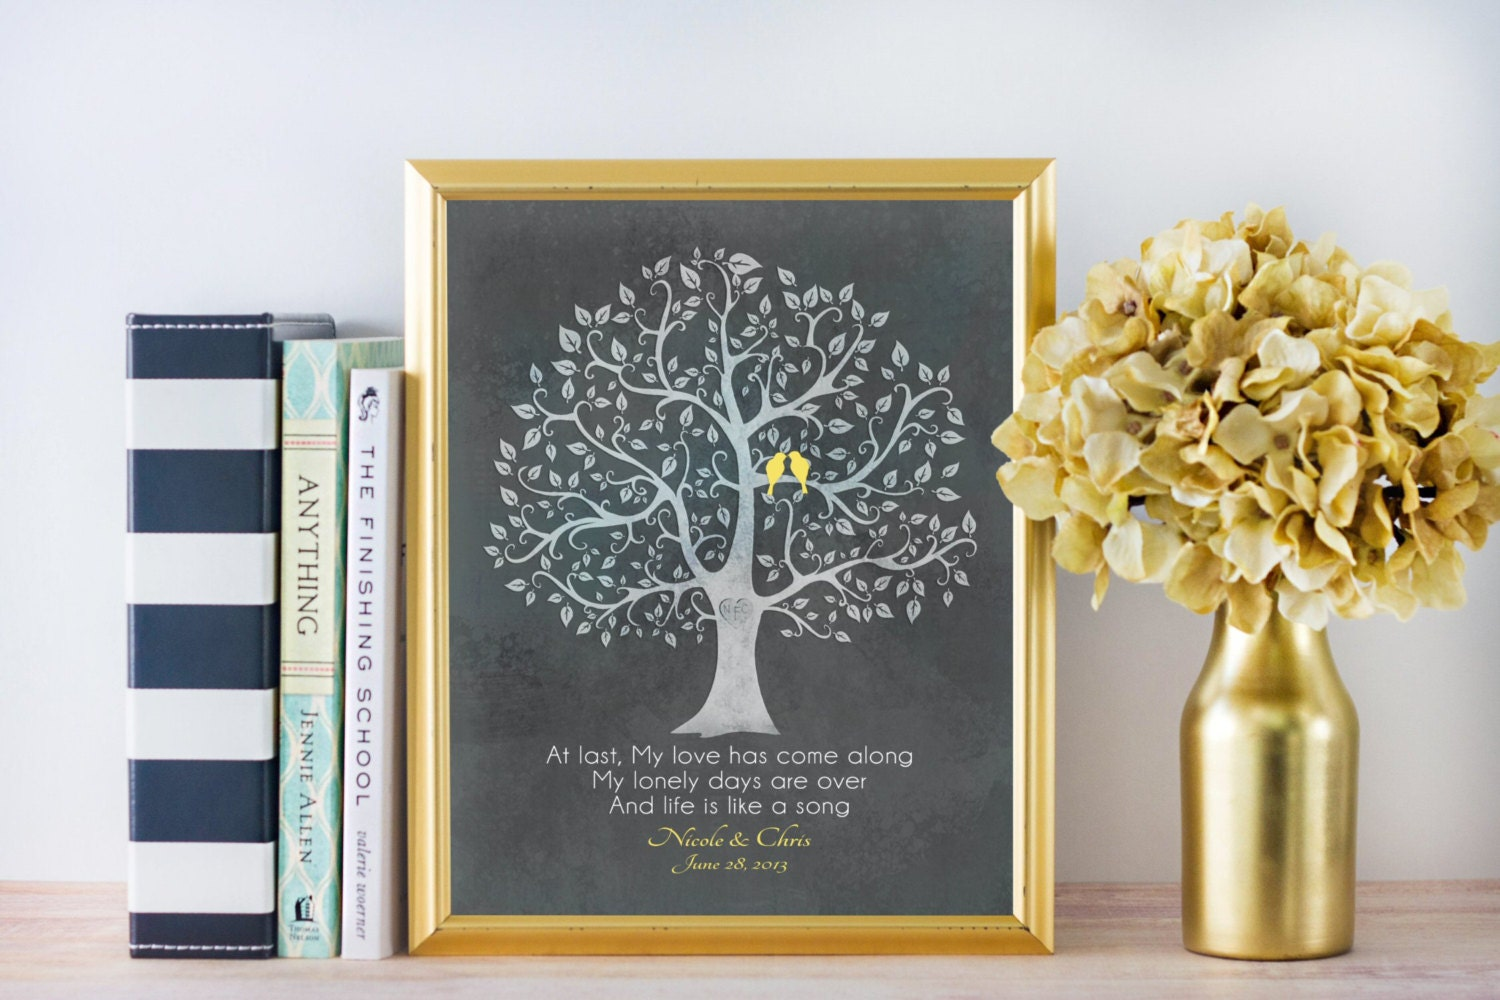 Wedding Gift Personalised: Personalized Anniversary CANVAS Wedding Gift Lyrics Quote